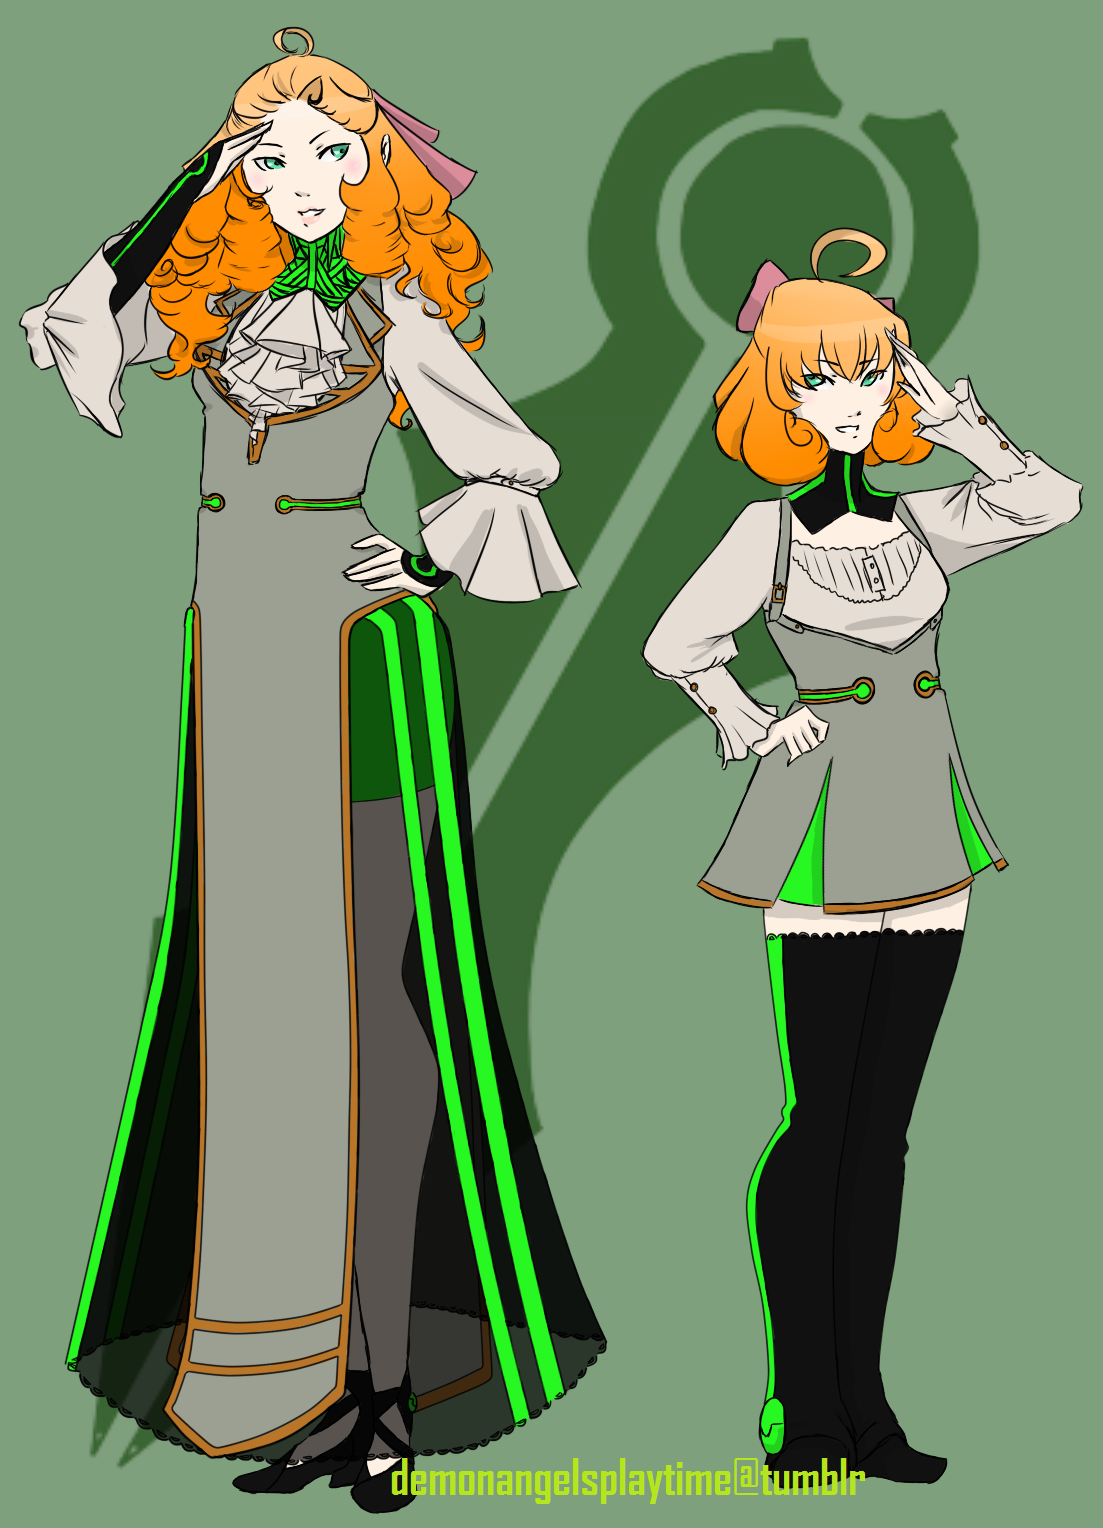 Escape From Reality Rwby Characters Rwby Rwby Anime Check out inspiring examples of rwby_penny artwork on deviantart, and get inspired by our community of talented artists. rwby characters rwby rwby anime